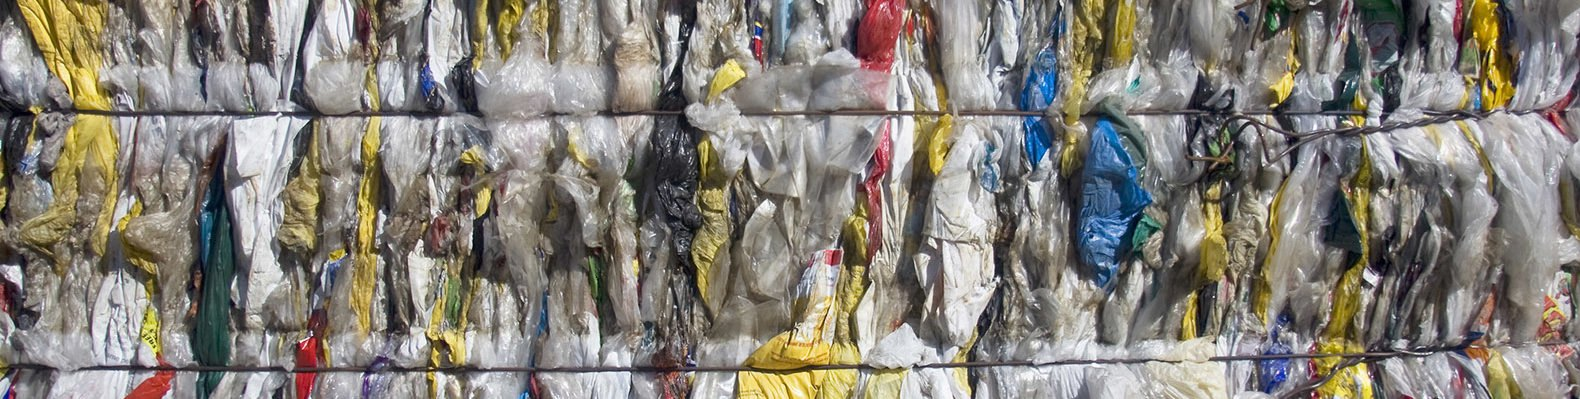 Plastic shopping bags squashed into bales for recycling